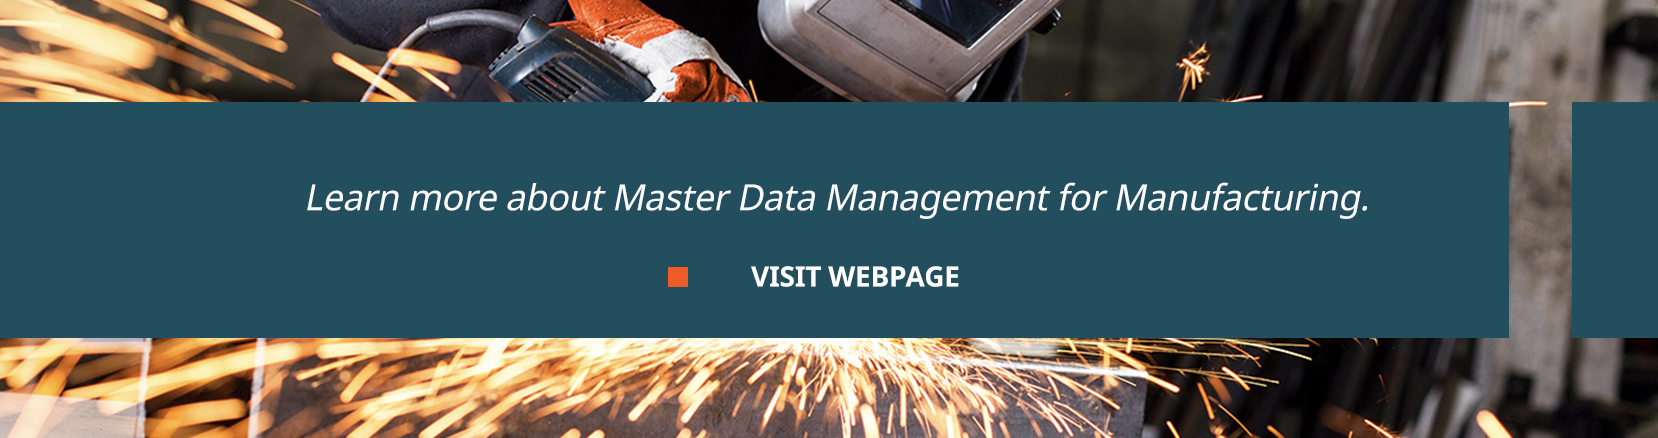 master data management for manufacturing